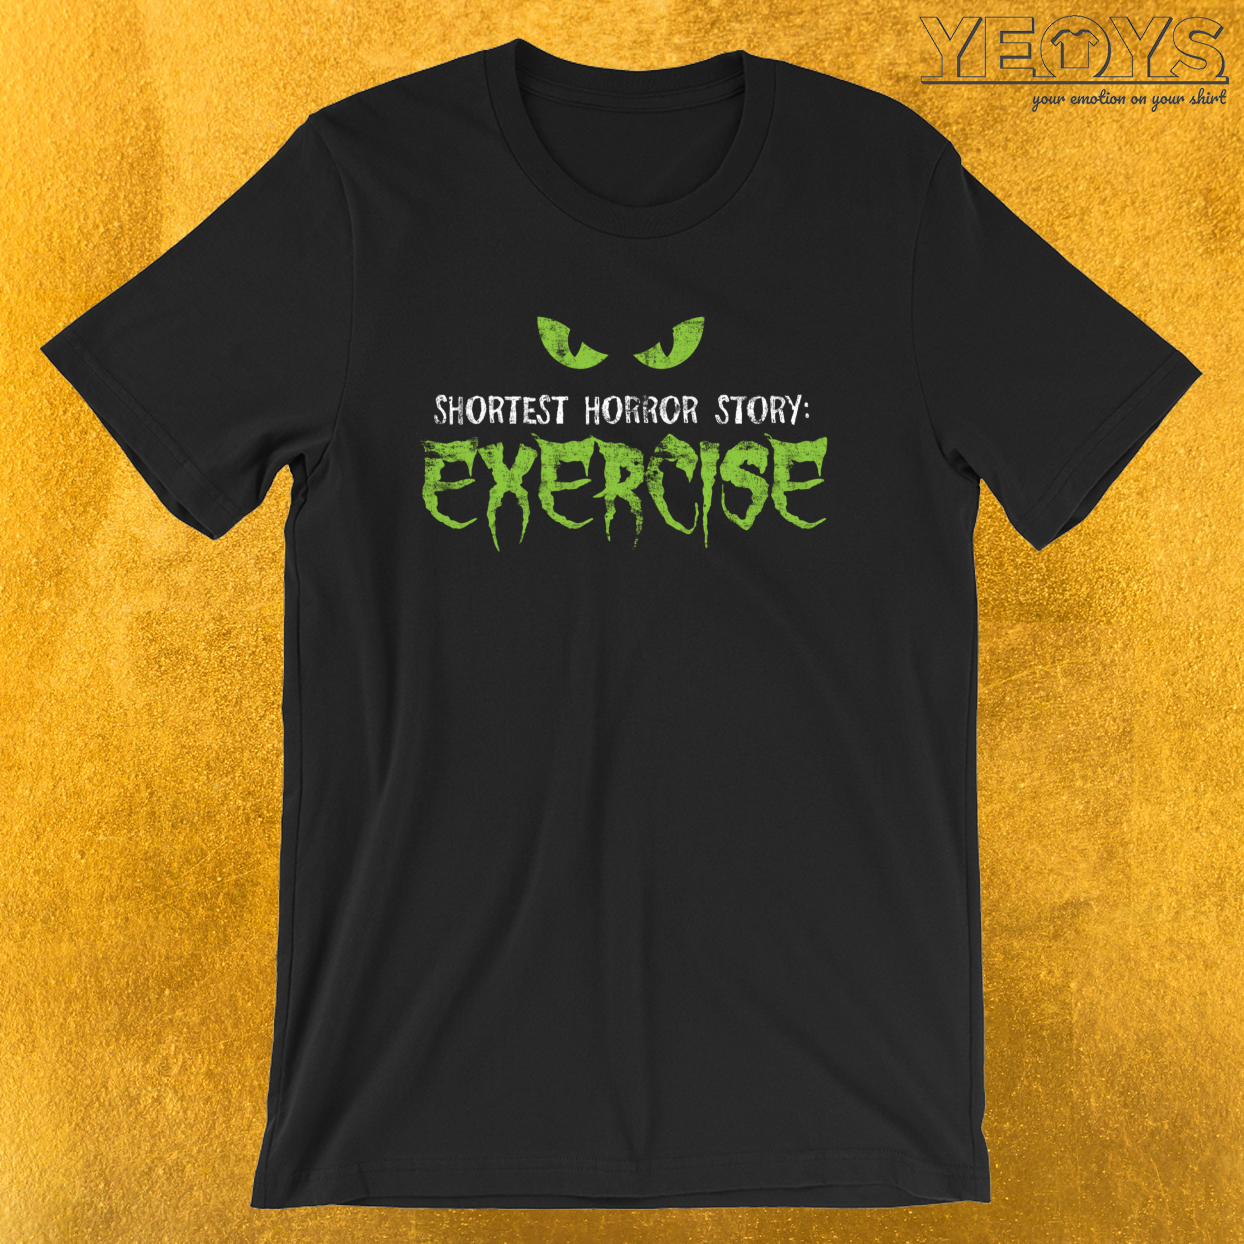 Shortest Horror Story Exercise – Funny Horror Movie Tee